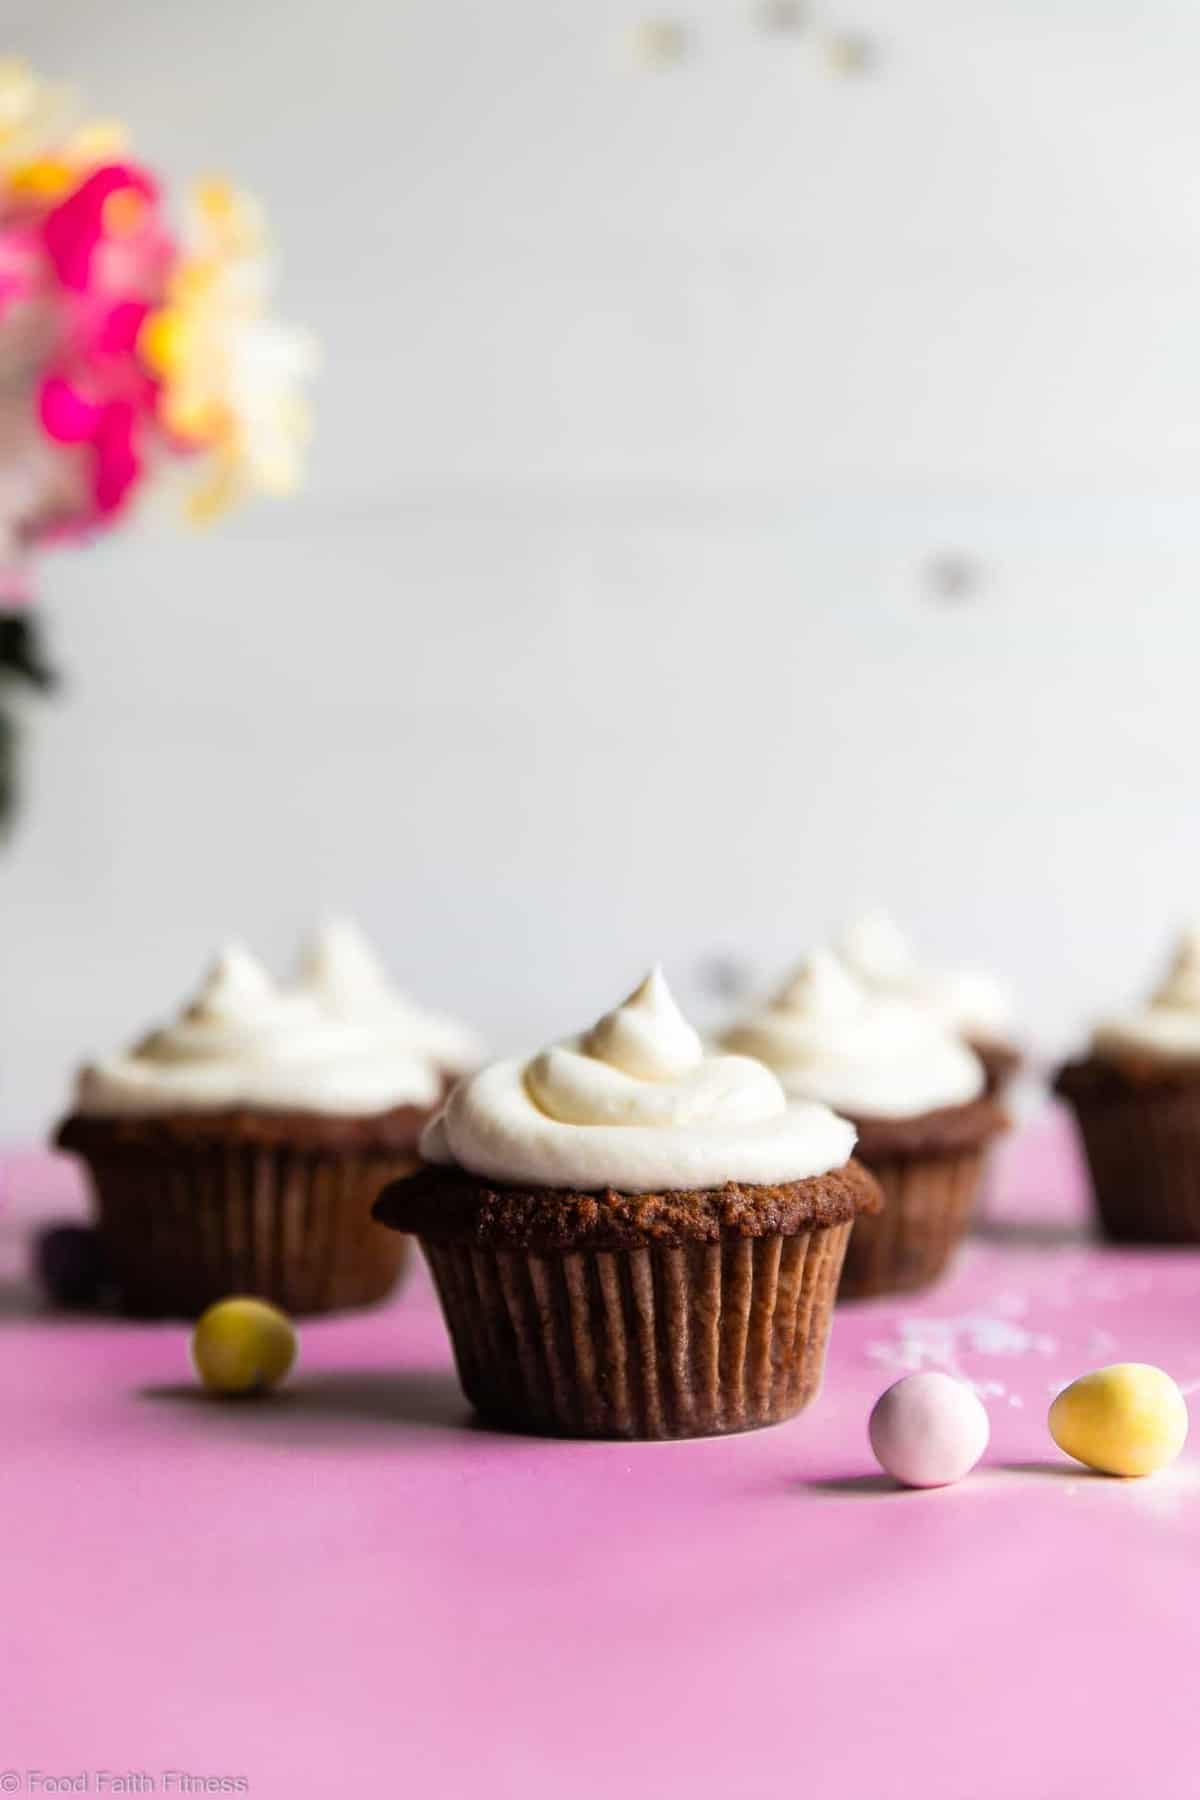 Gluten Free Carrot Cake Cupcakes Recipe -These Gluten Free Carrot Cake Cupcakes are tender, light, moist and perfectly spicy-sweet! No one will believe they are gluten free! Dairy free option included! | #Foodfaithfitness |